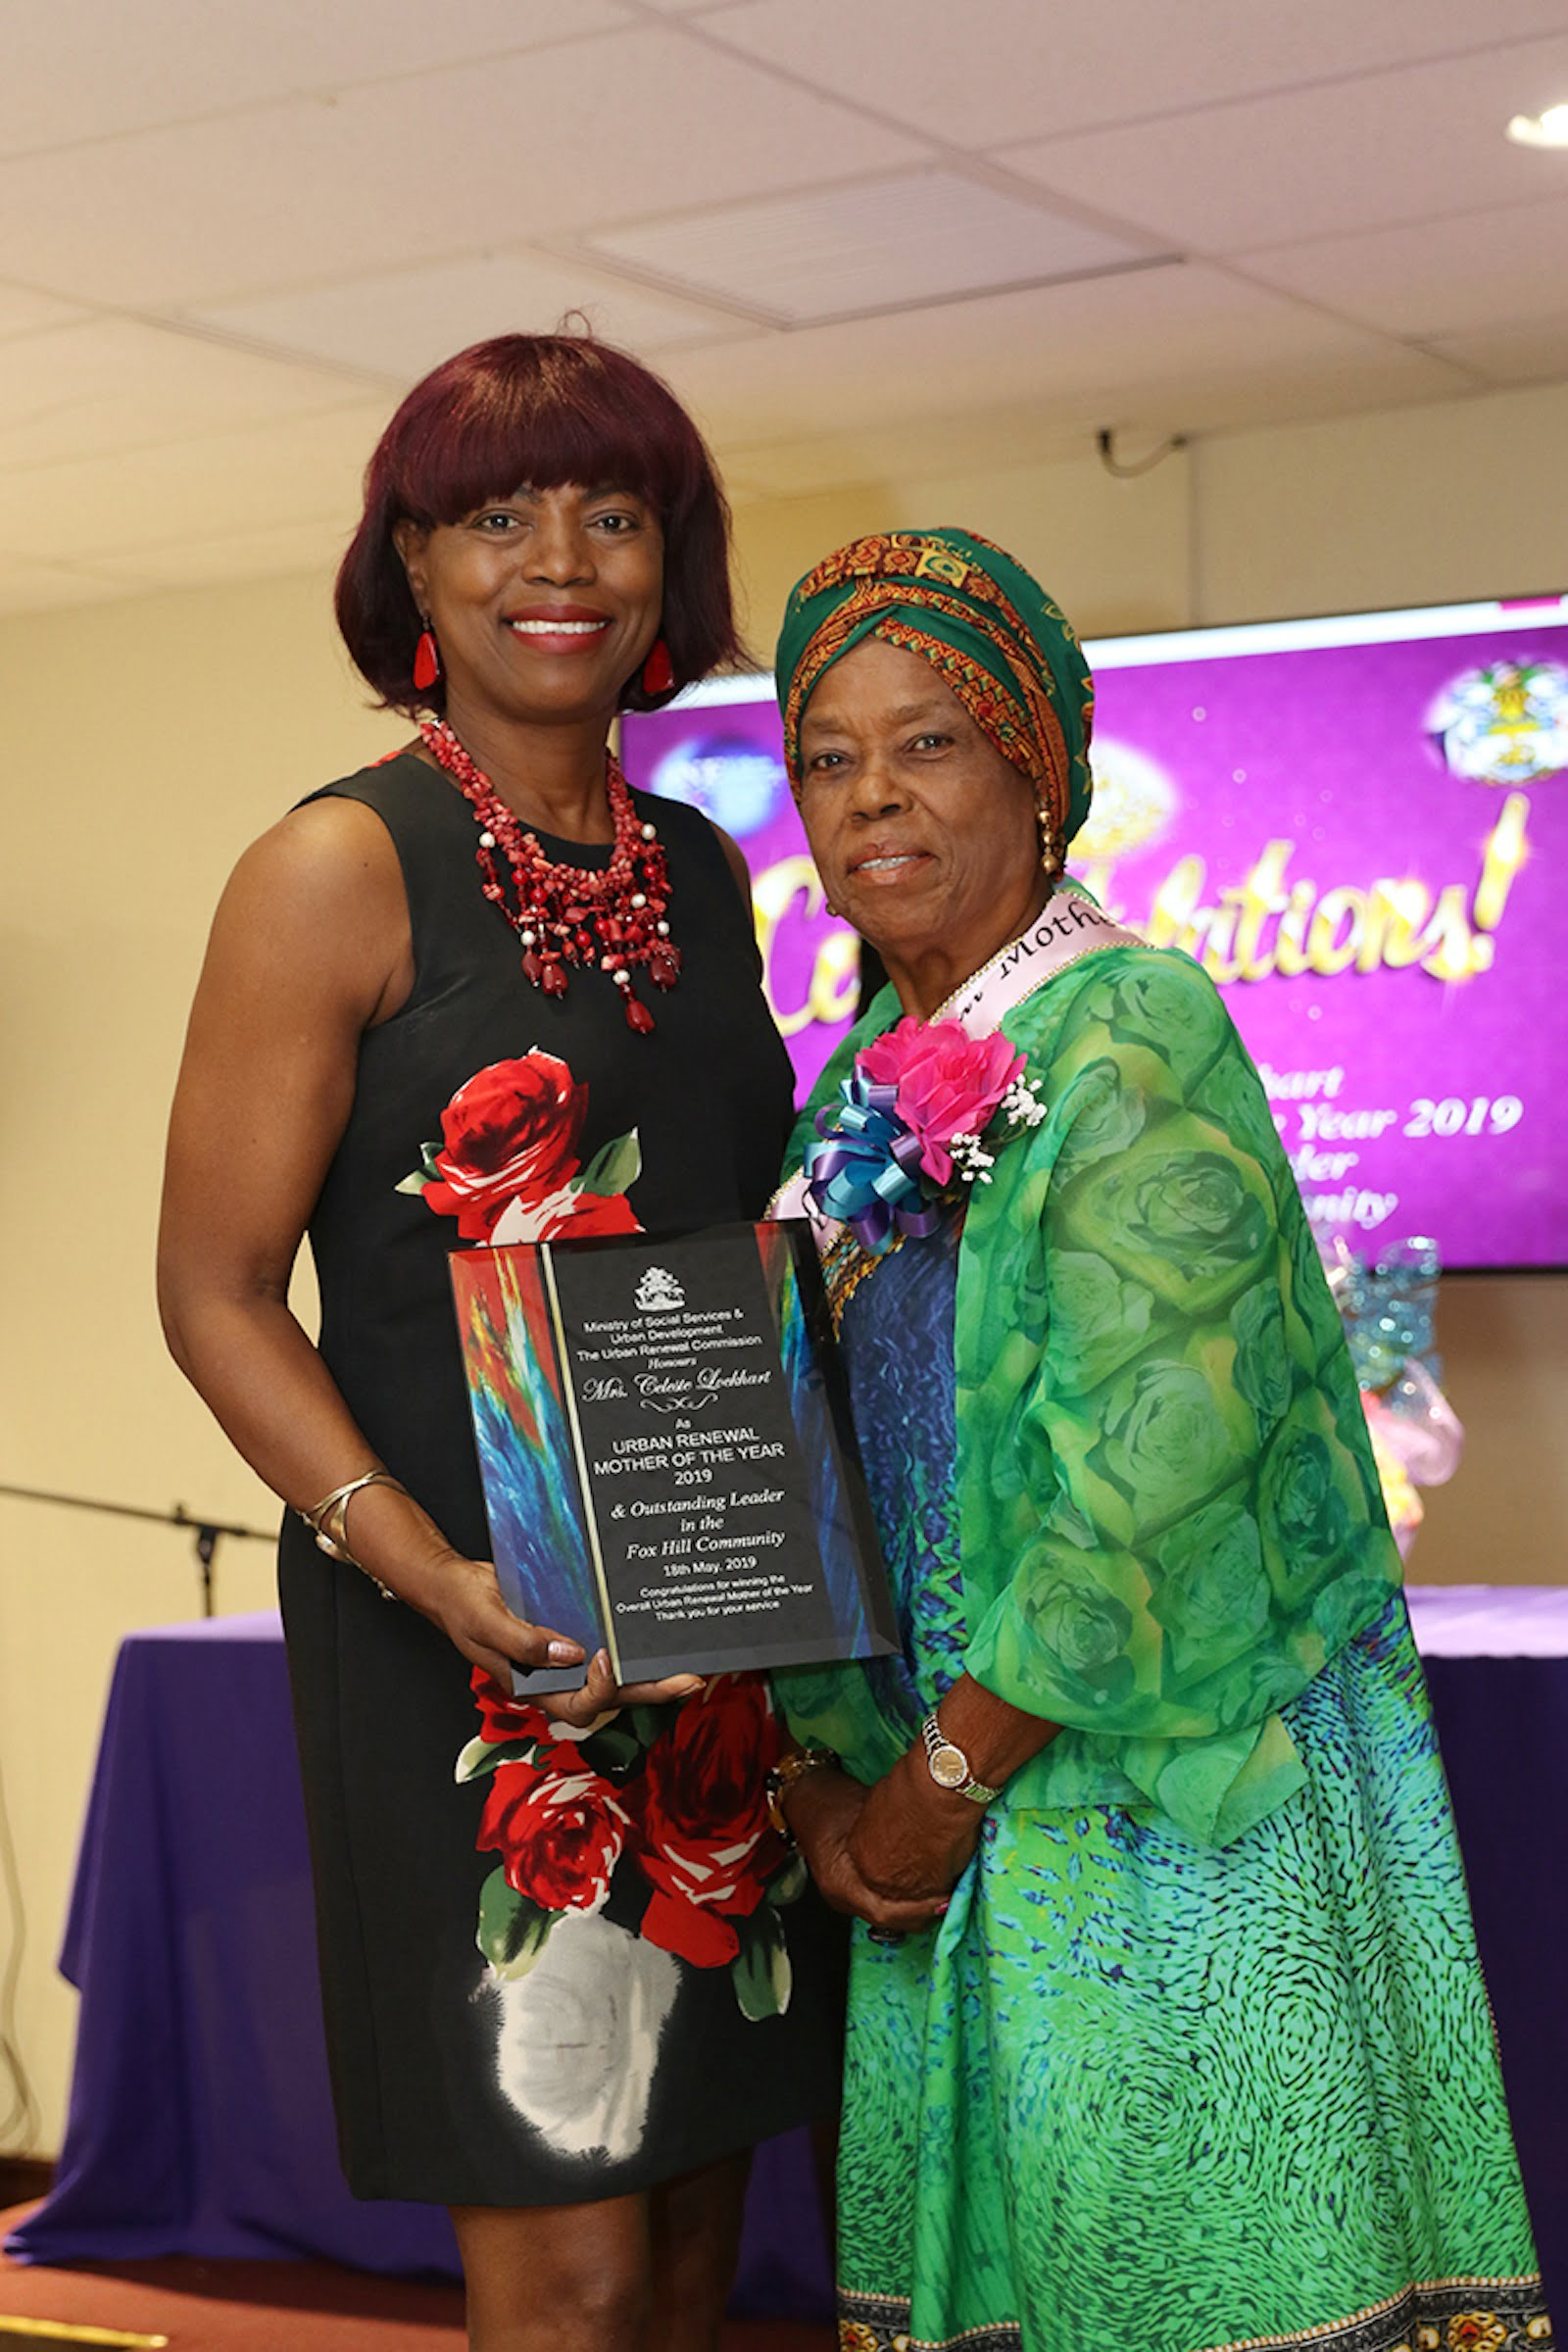 Mrs. Celeste Lockhart is Urban Renewal's 2019 Mother of the Year